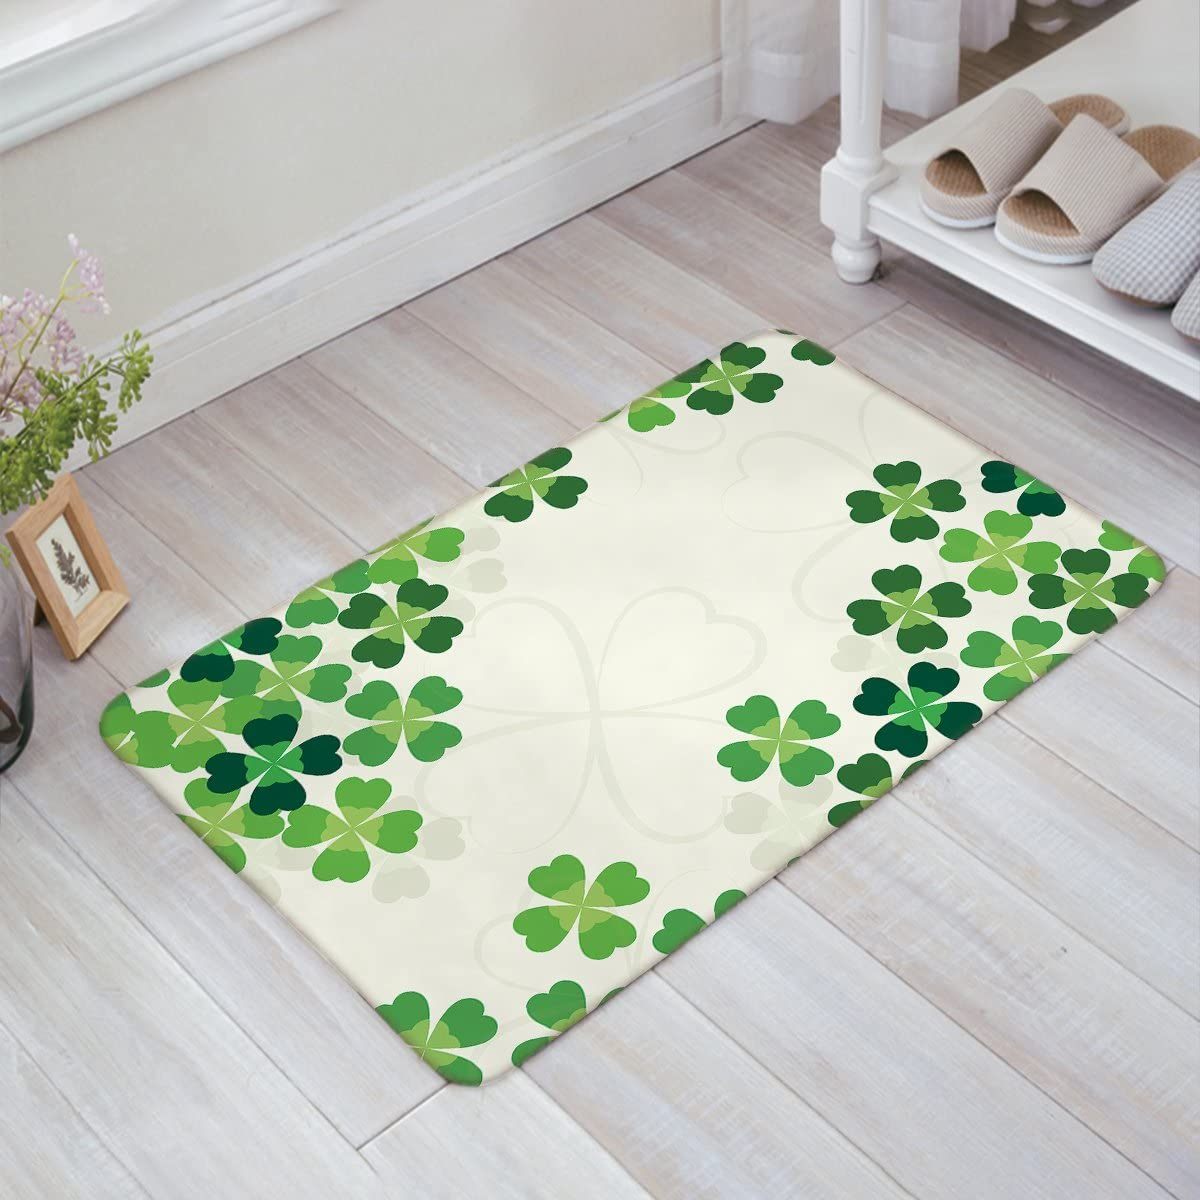 YEHO Art Gallery St. Patrick s Day Decorative Doormat Custom Machine-Washable Door Mat Clover Pattern Indoor Outdoor Decor Rug Doormat 18 L x 30 W